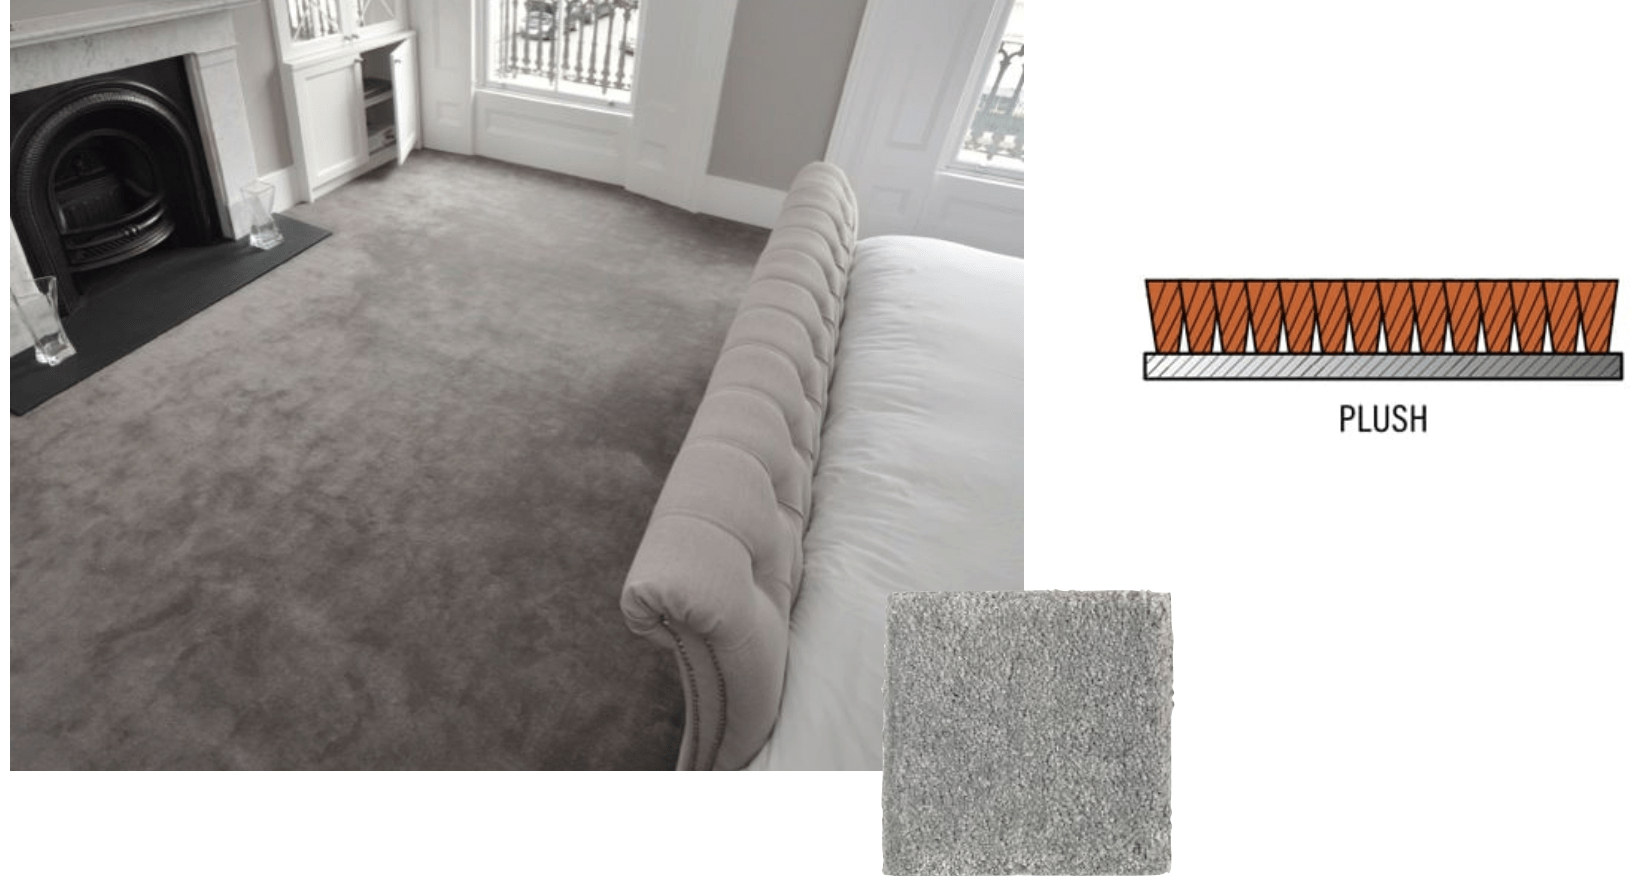 Loops Plush Berber Oh My – The Best Carpet Pile Style For | Low Pile Carpet For Stairs | Wool | Carpet Wrapped | Hallway | Bedroom | High End